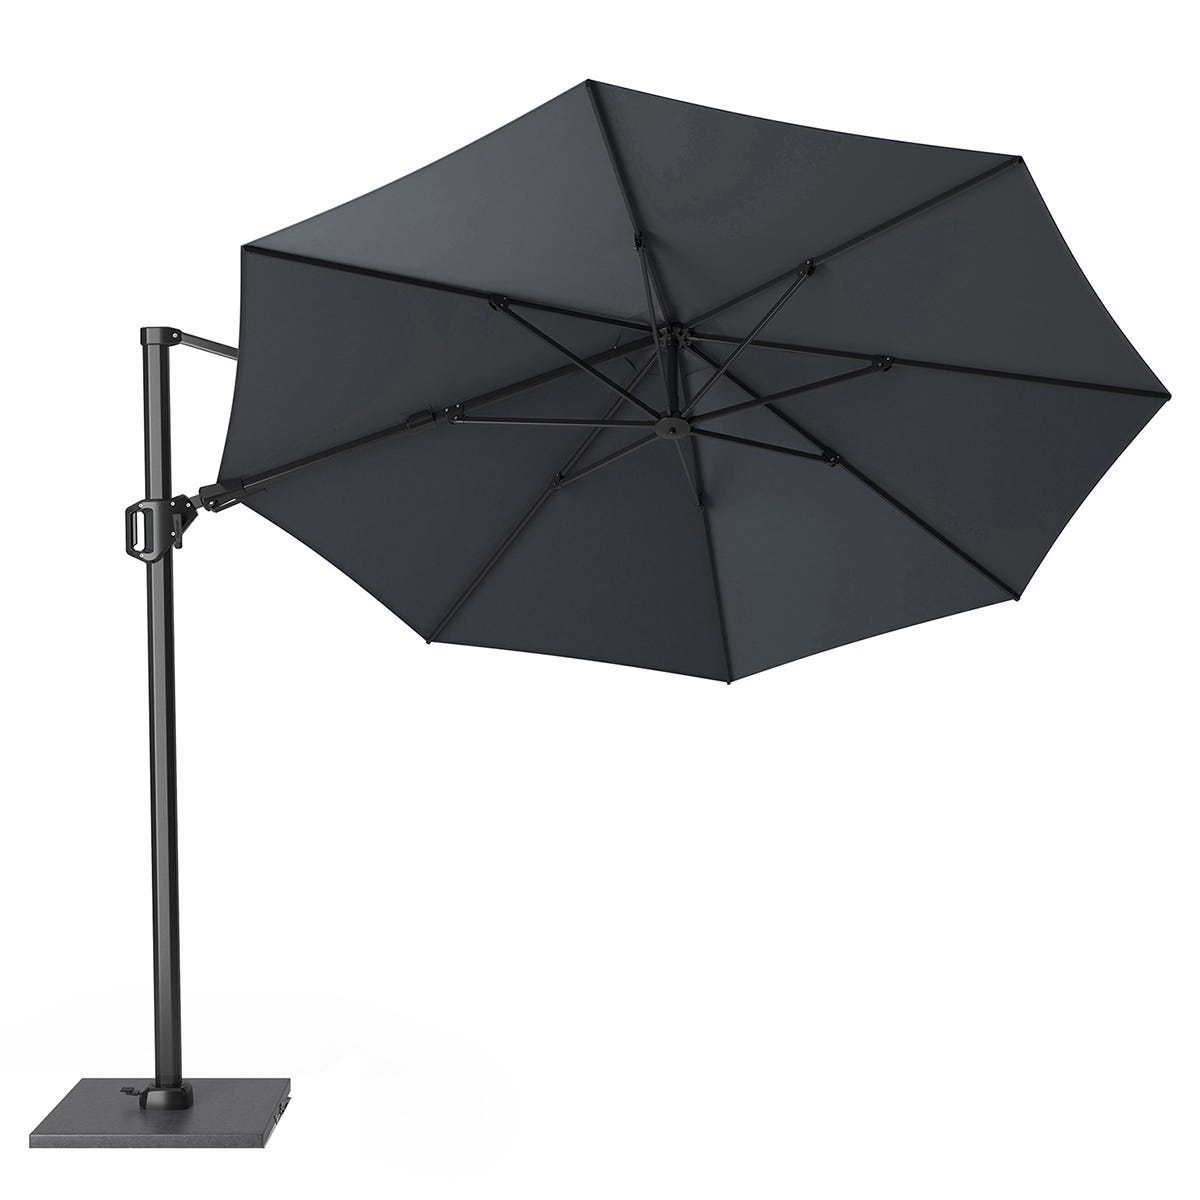 Pacific Lifestyle Challenger T2 3.5m Round Anthracite Parasol with Burnt Black Granite 90KG Parasol Base